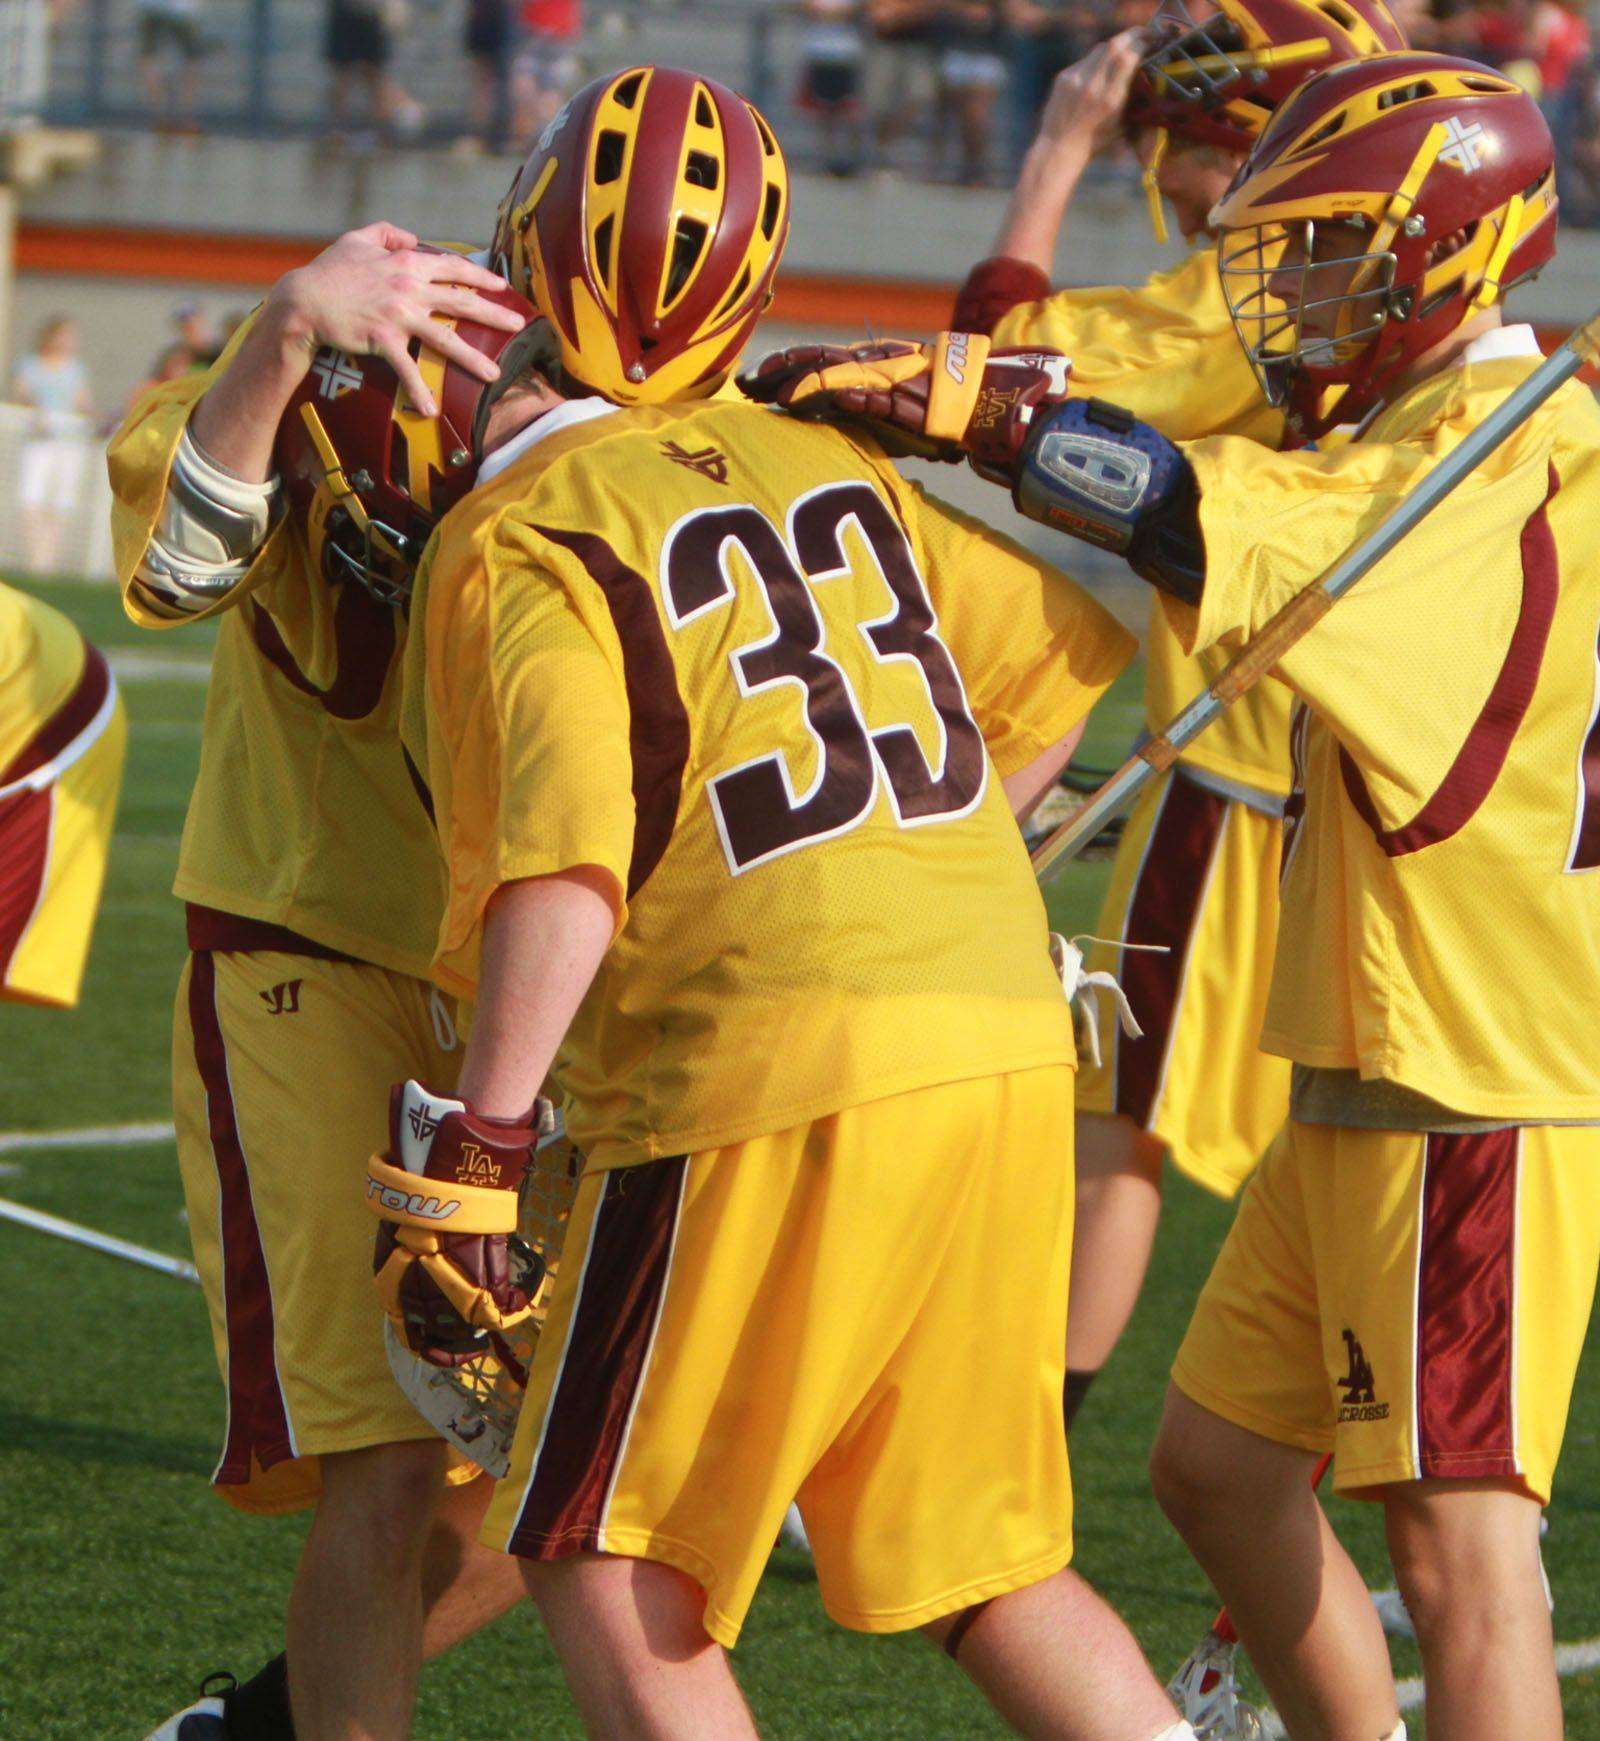 Loyola Academy's Kevin Steger, center, gets a hand from teammates after losing the IHSLA state lacrosse championship to New Trier in Oak Park on Saturday.